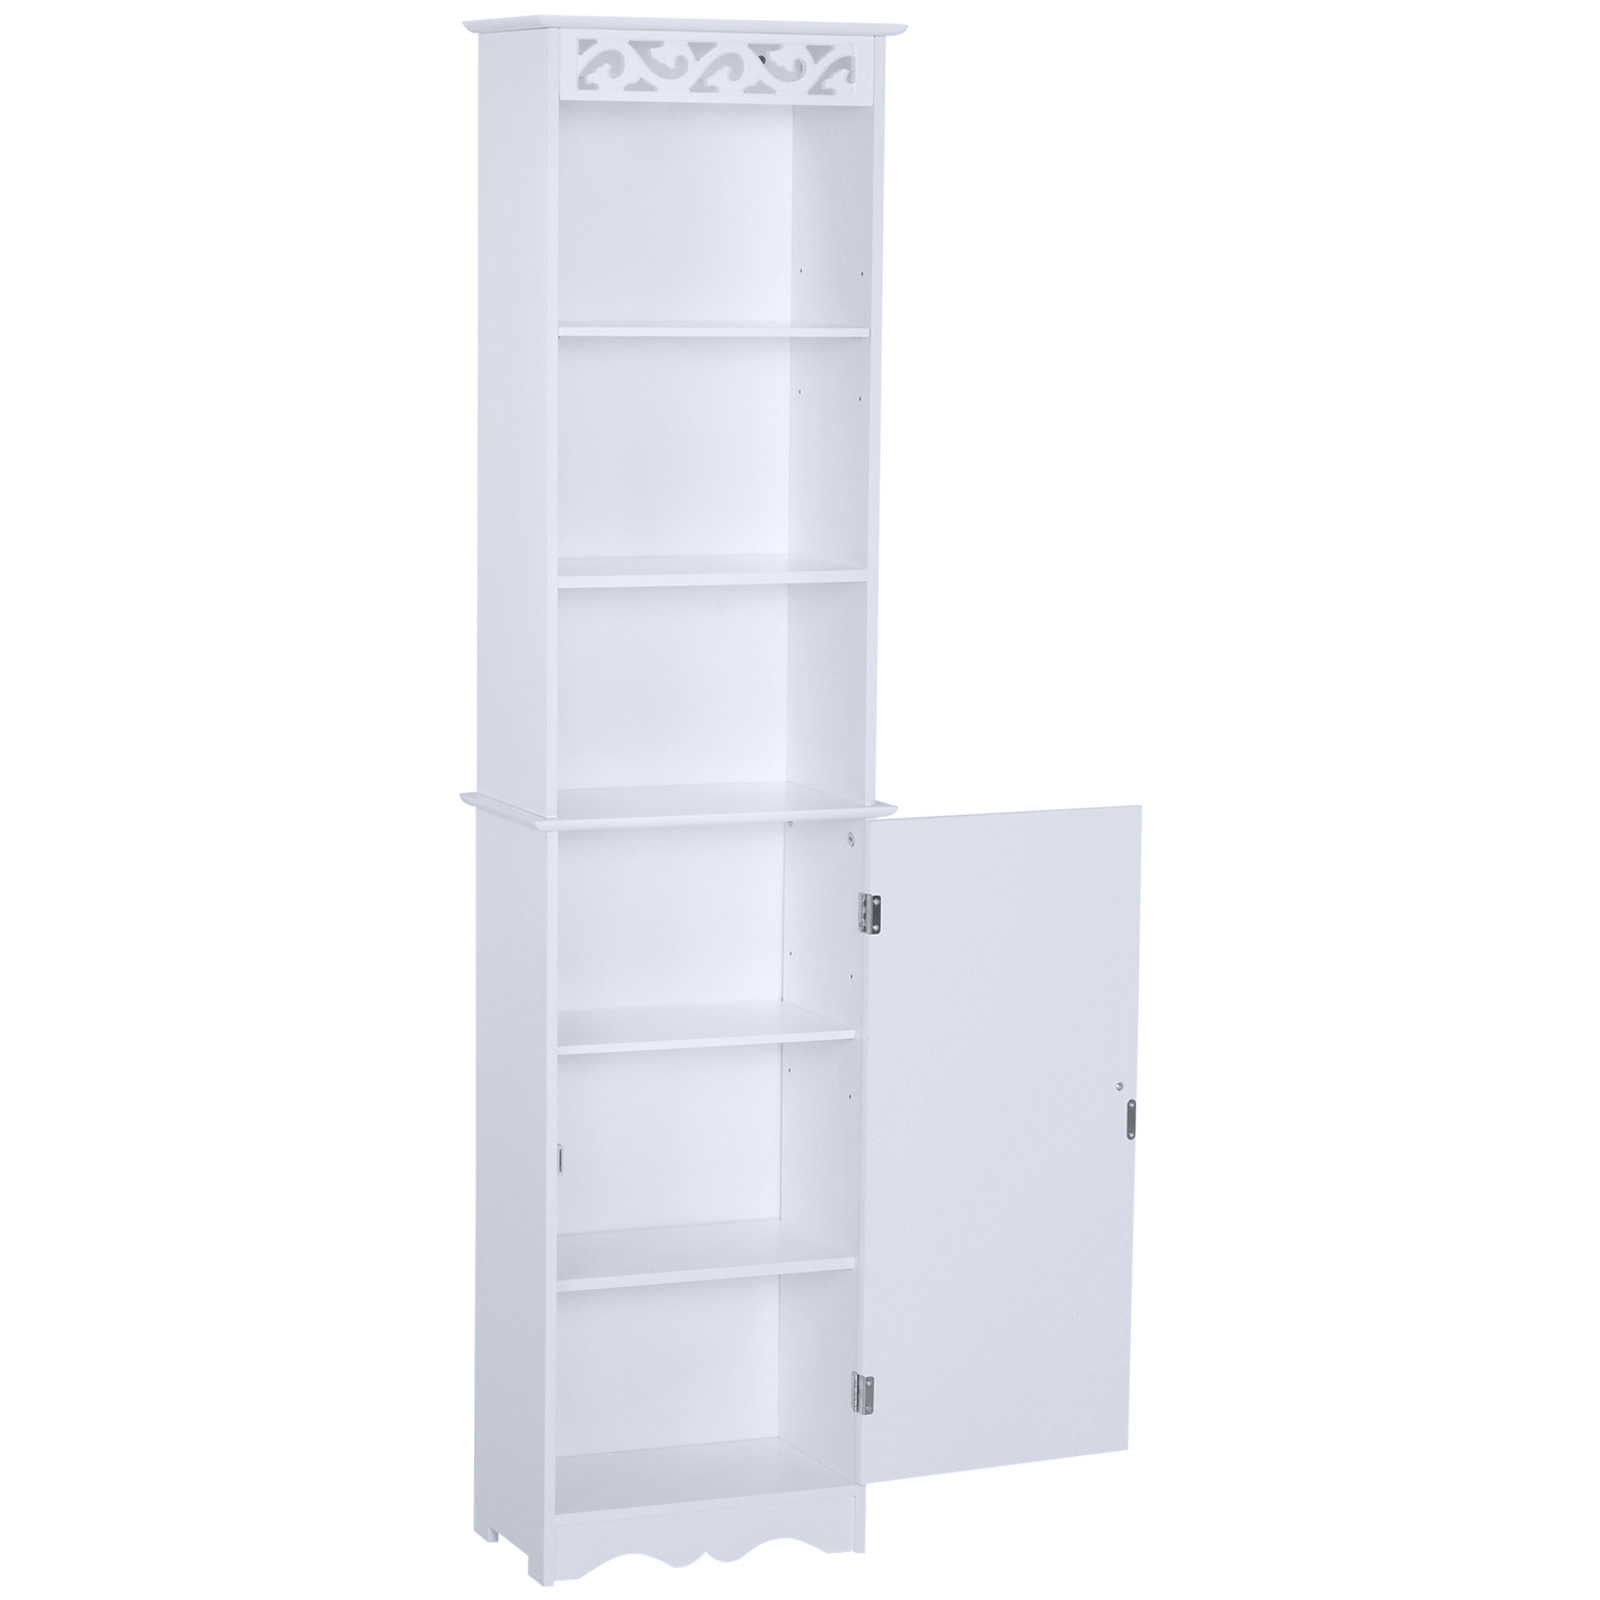 Bathroom-Cabinet-Corner-Shelf-Unit-Drawers-Tower-Cupboard-Wood-Storage-White thumbnail 15